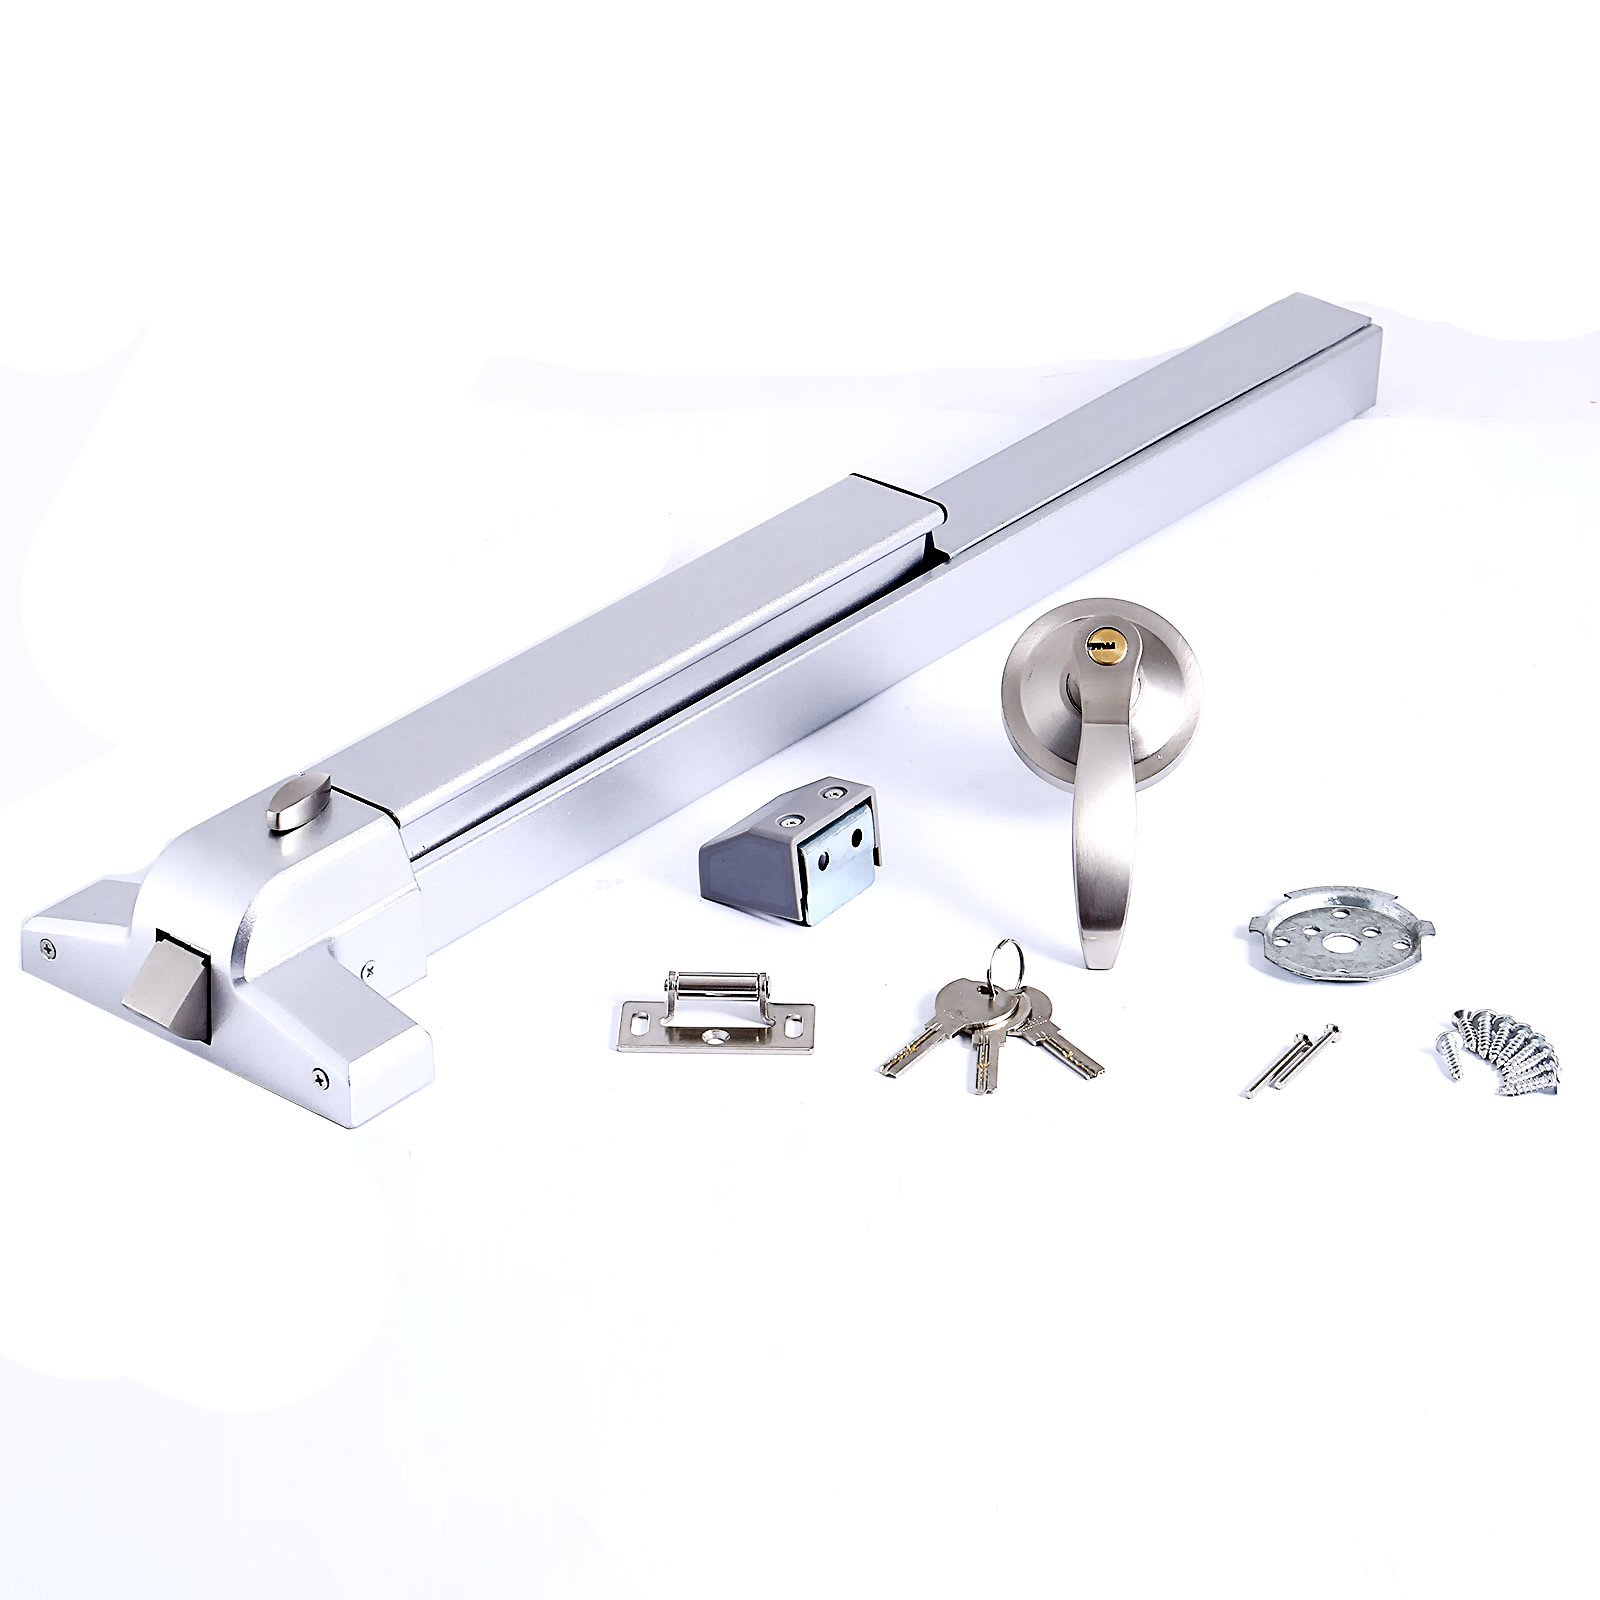 OrangeA Push Bar Panic Exit Device Emergency Lock made by Stainless Steel 400 Series (Push Bar with Exterior Lever)